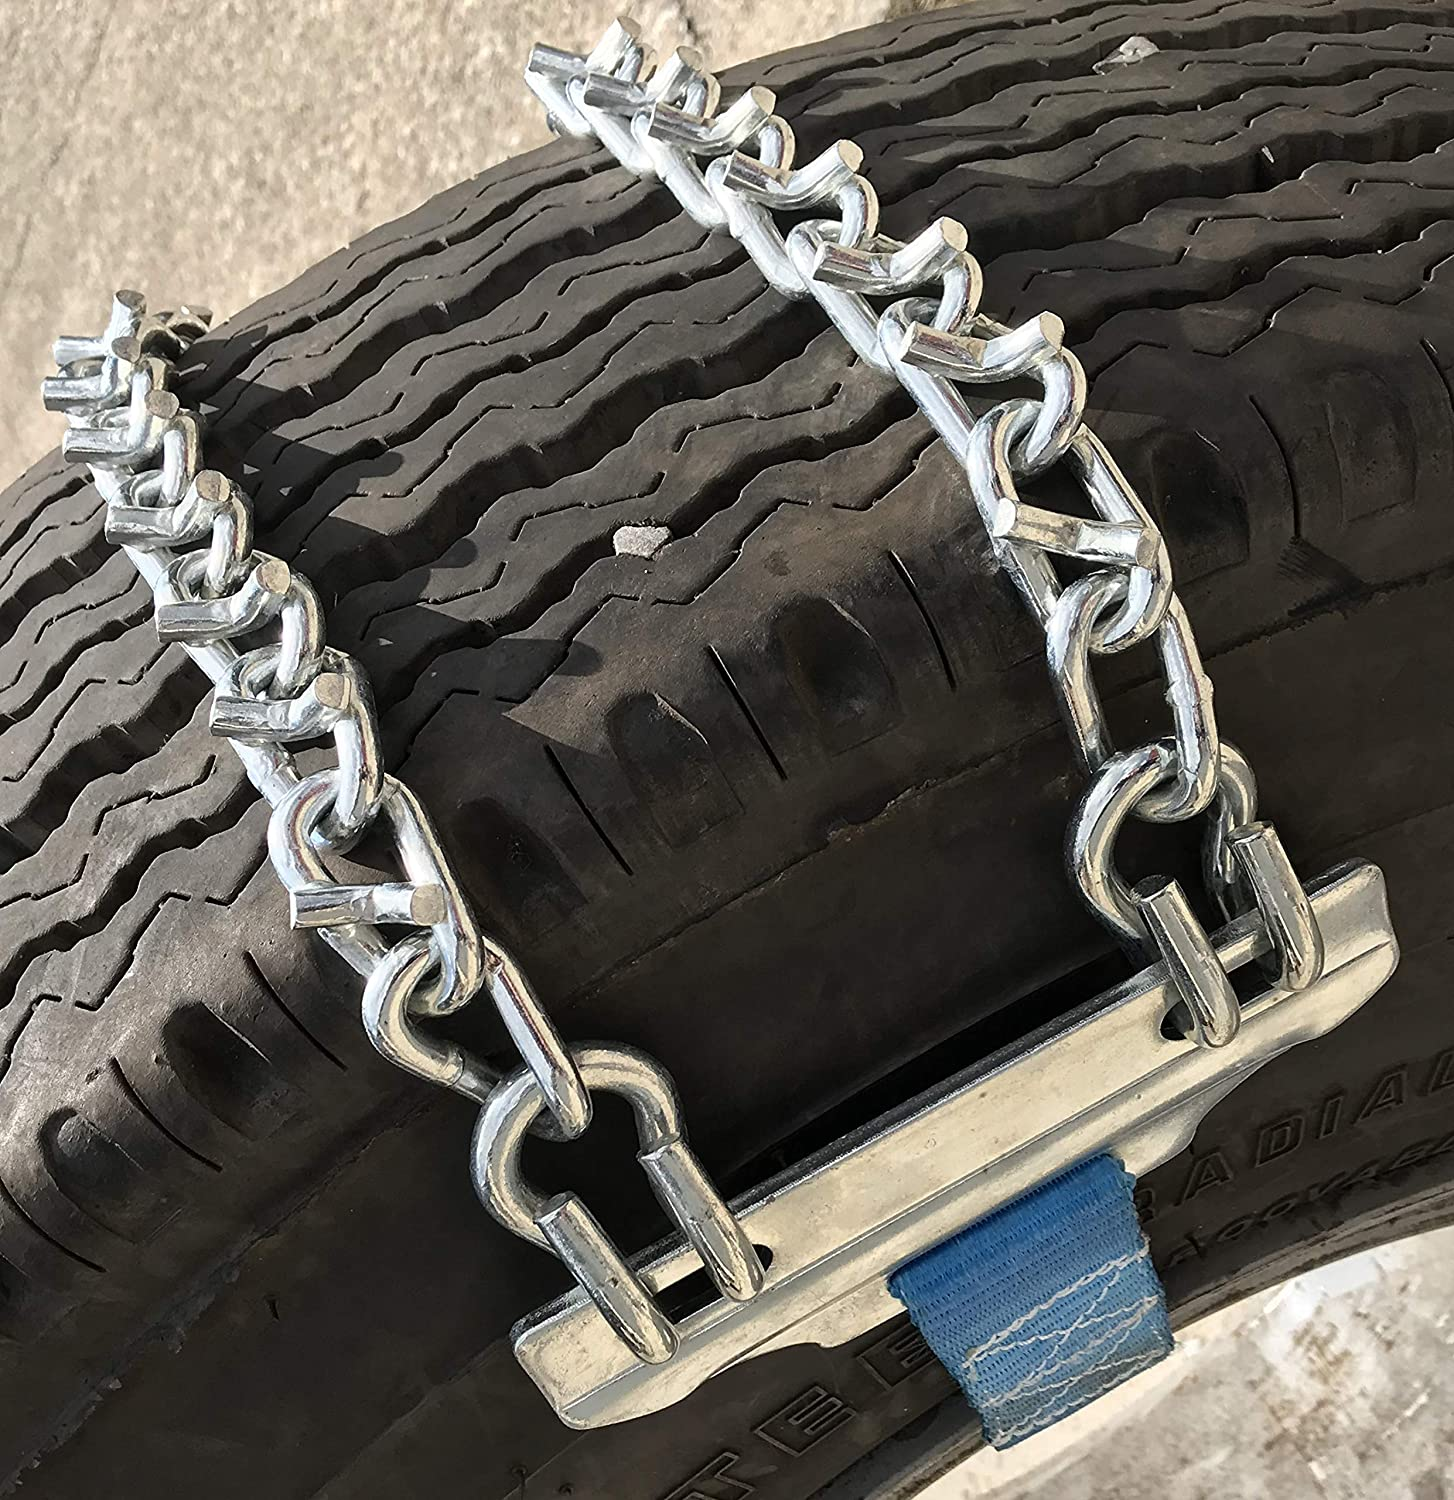 TireChain.com 11-22.5 11 22.5 V-Bar Strap On Emergency Tire Chains